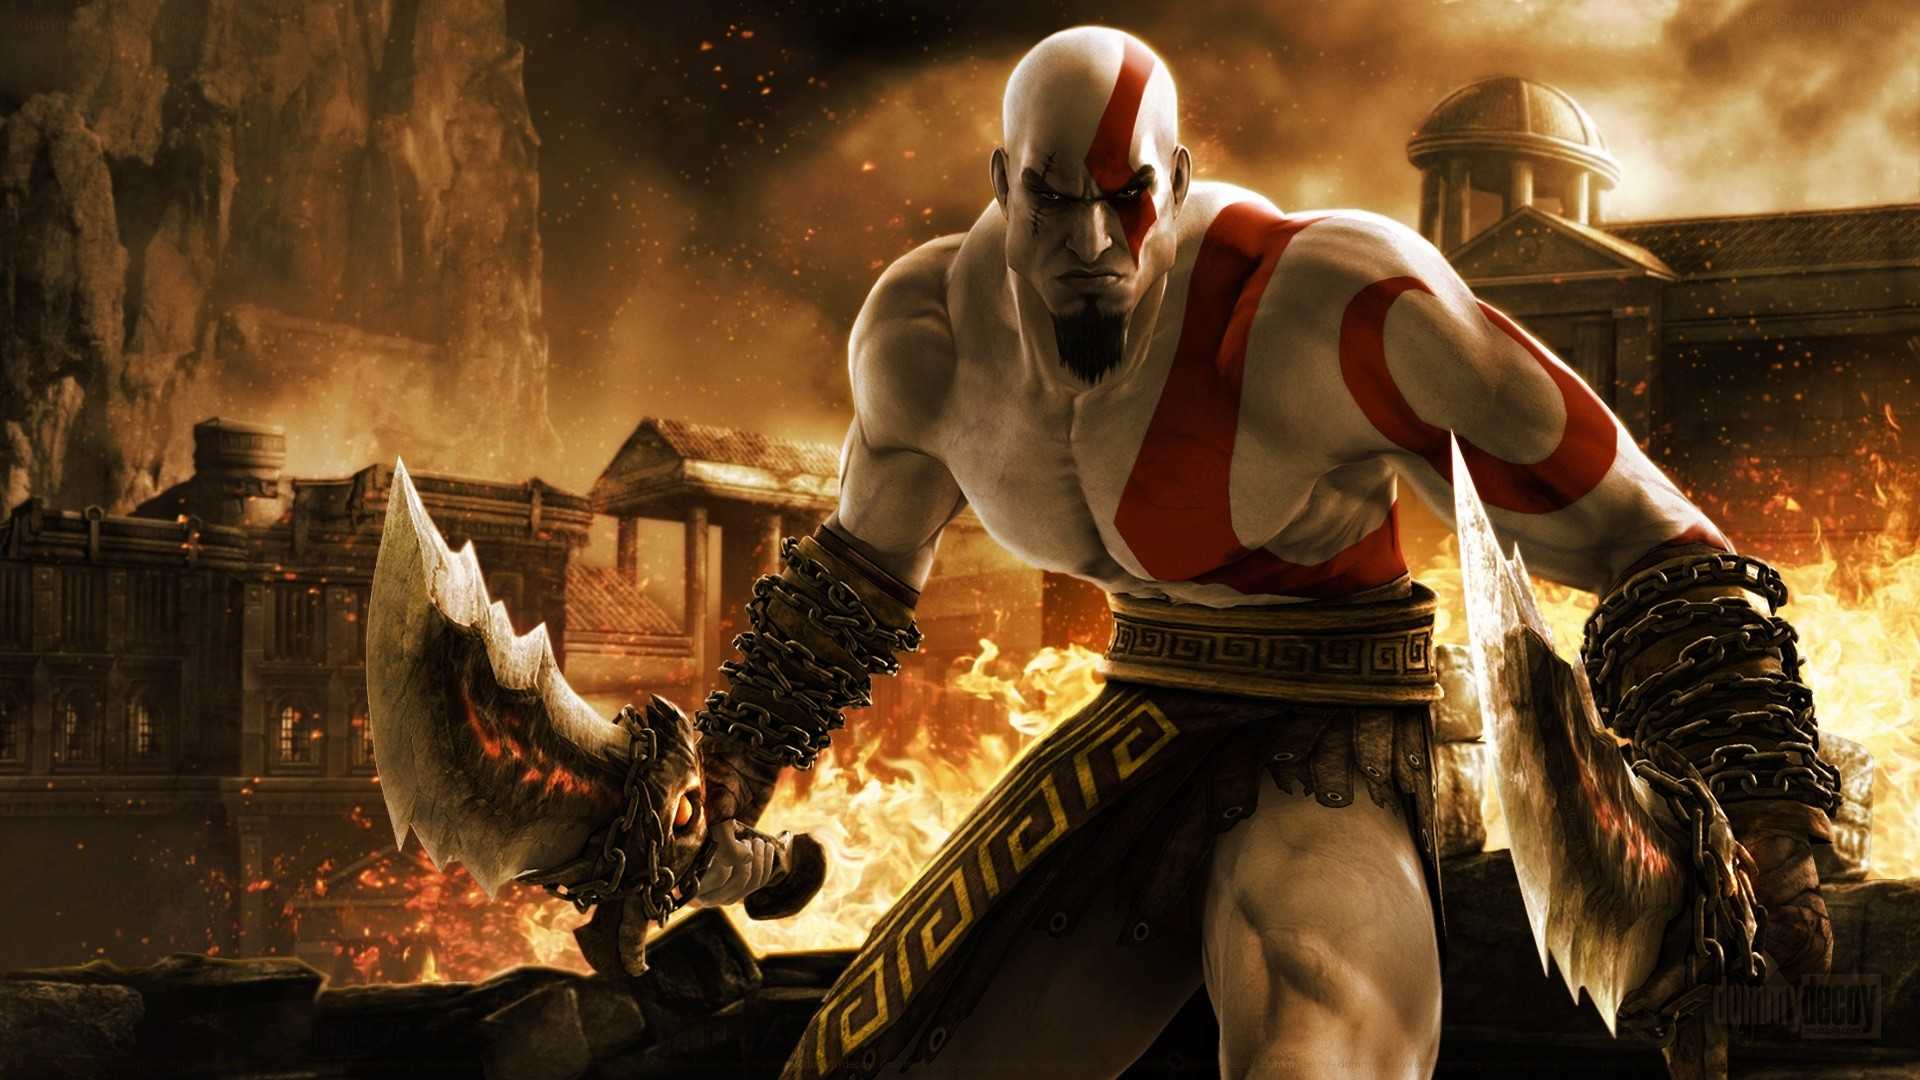 God Of War 3 Photo Cool Images Free High Definition - God Of War Hd Wallpaper For Pc - HD Wallpaper